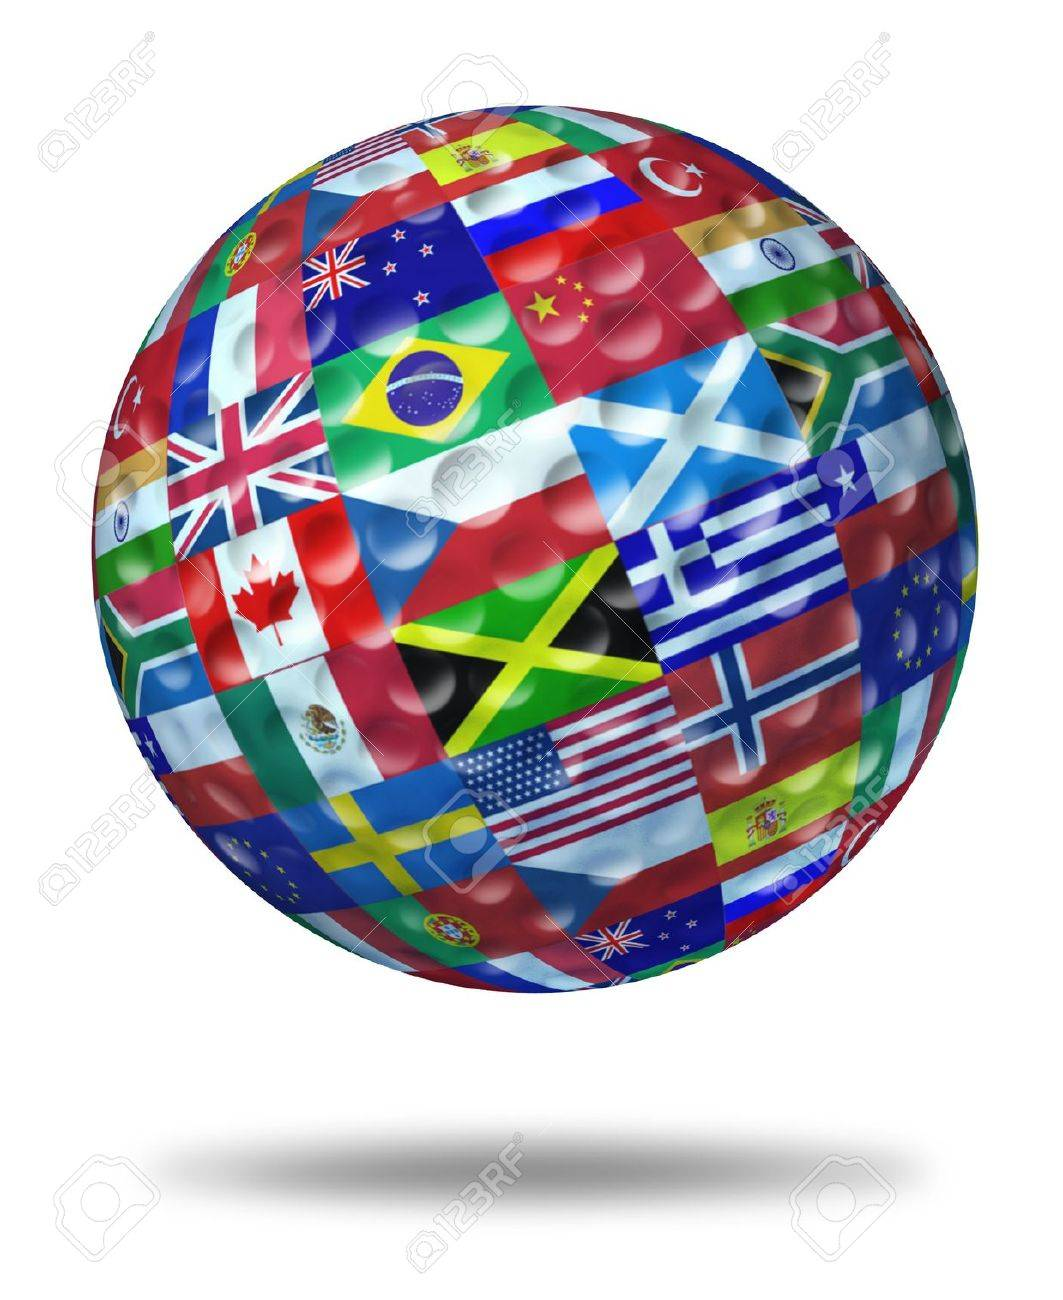 International golf tournament champion symbol represented by a golf ball with the flags of the world countries showing the concept of global golfing sports competion winning and world golf course  game activity. Stock Photo - 11119740